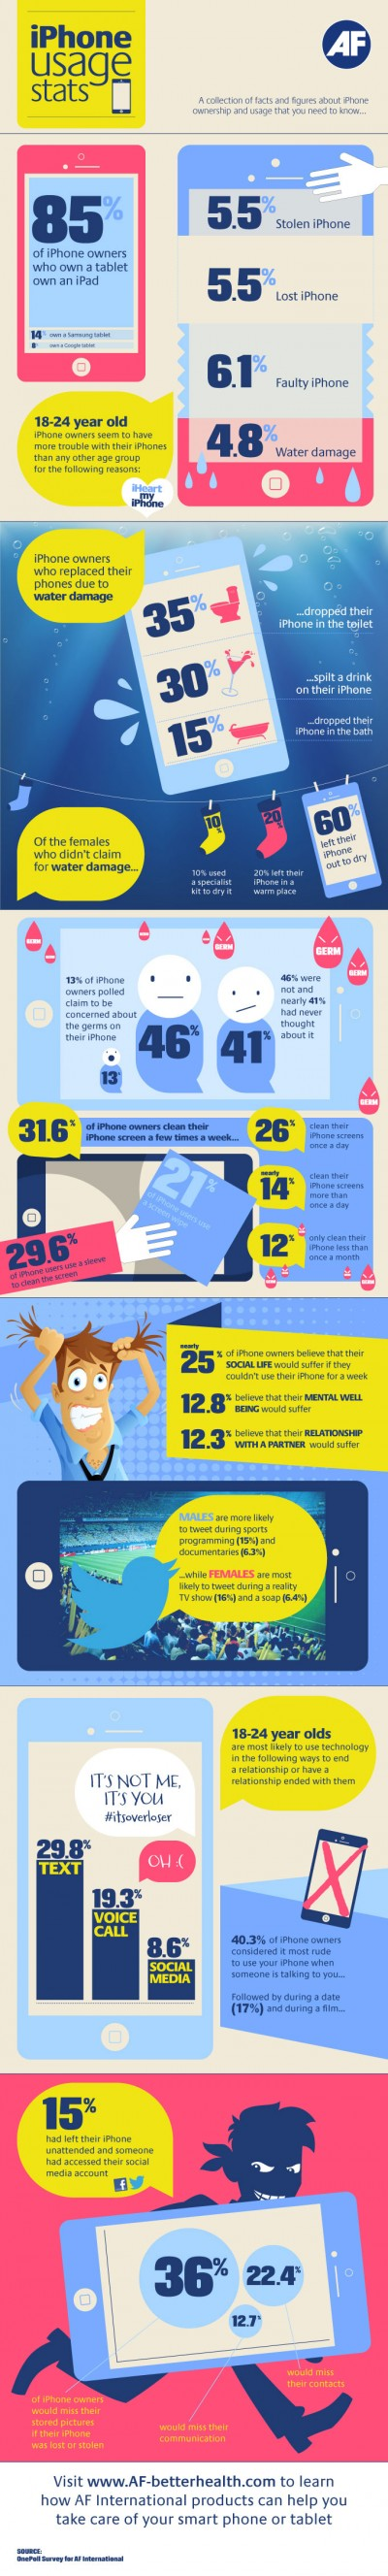 10. iphone-usage-stats-infographic-400x2655